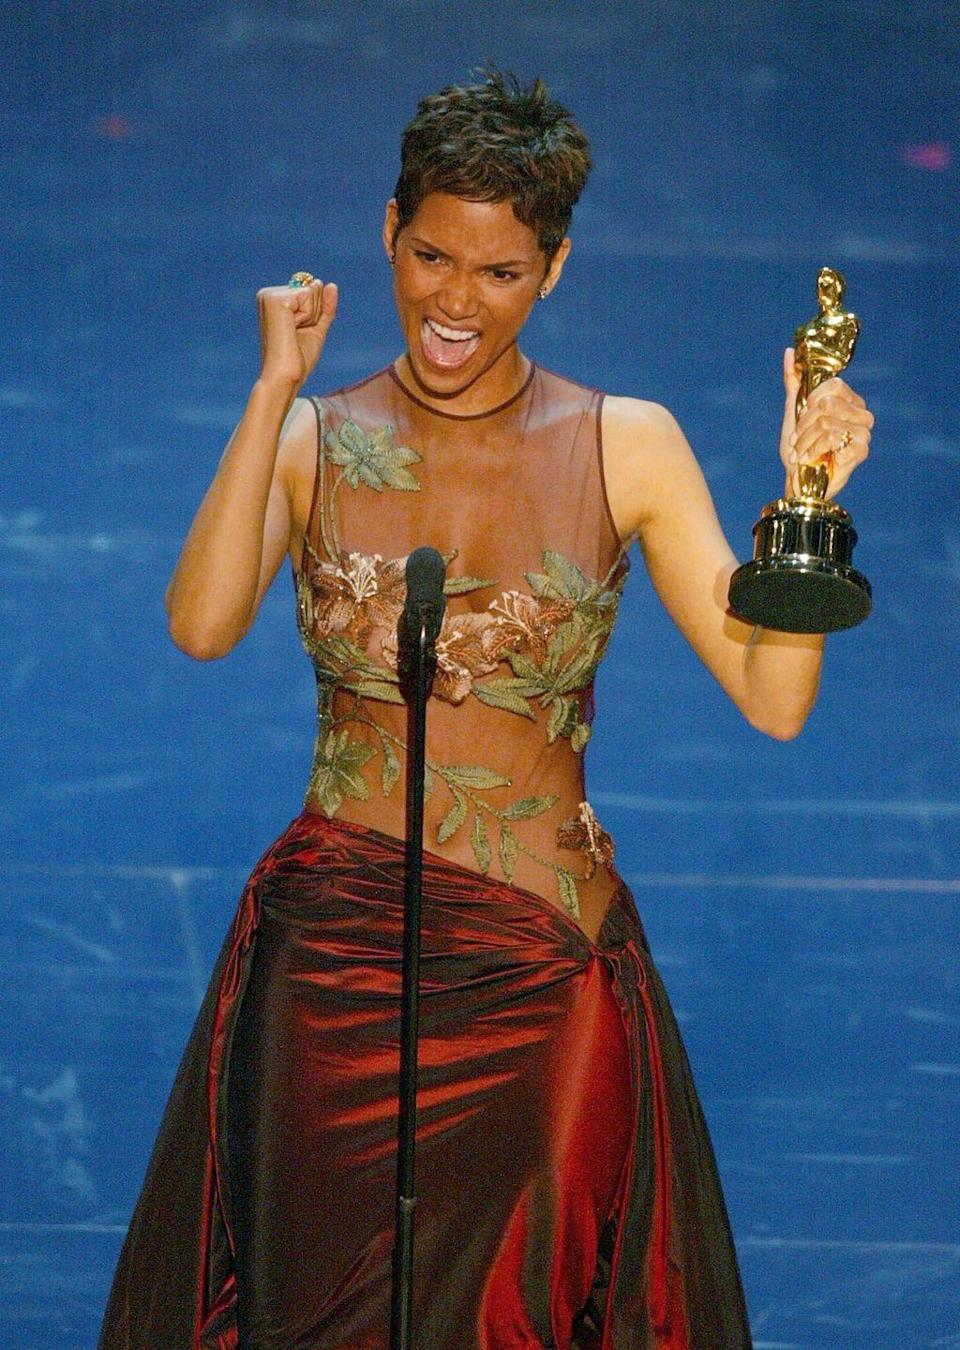 "<p><strong>Claim to fame: </strong>Actress</p><p><strong>Why she's extraordinary: </strong>In 2002 Berry became the first—and still only—Black woman to be named Best Actress at the Oscars for her leading role in <em>Monster's Ball</em>. ""This moment is so much bigger than me,"" <a href=""http://aaspeechesdb.oscars.org/link/074-3/"" rel=""nofollow noopener"" target=""_blank"" data-ylk=""slk:she said"" class=""link rapid-noclick-resp"">she said</a> at the time. ""It's for every nameless, faceless woman of color that now has a chance because this door tonight has been opened. Thank you. I'm so honored.<strong>""</strong></p>"